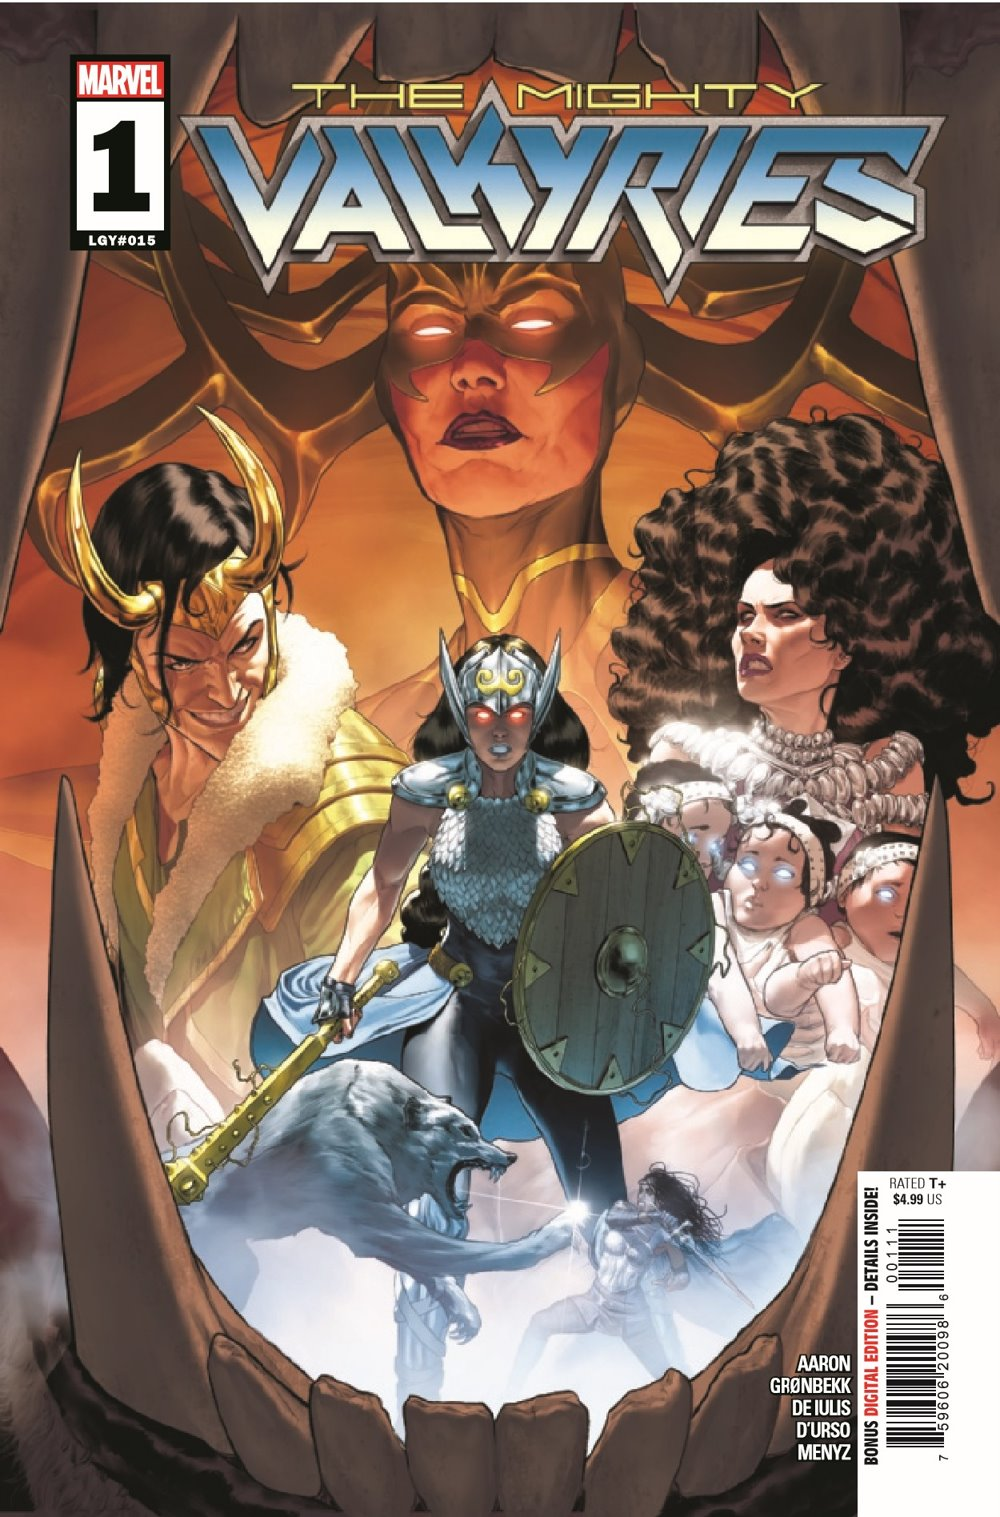 MIGHTYVALKYRIES2021001_Preview-1 ComicList Previews: THE MIGHTY VALKYRIES #1 (OF 5)